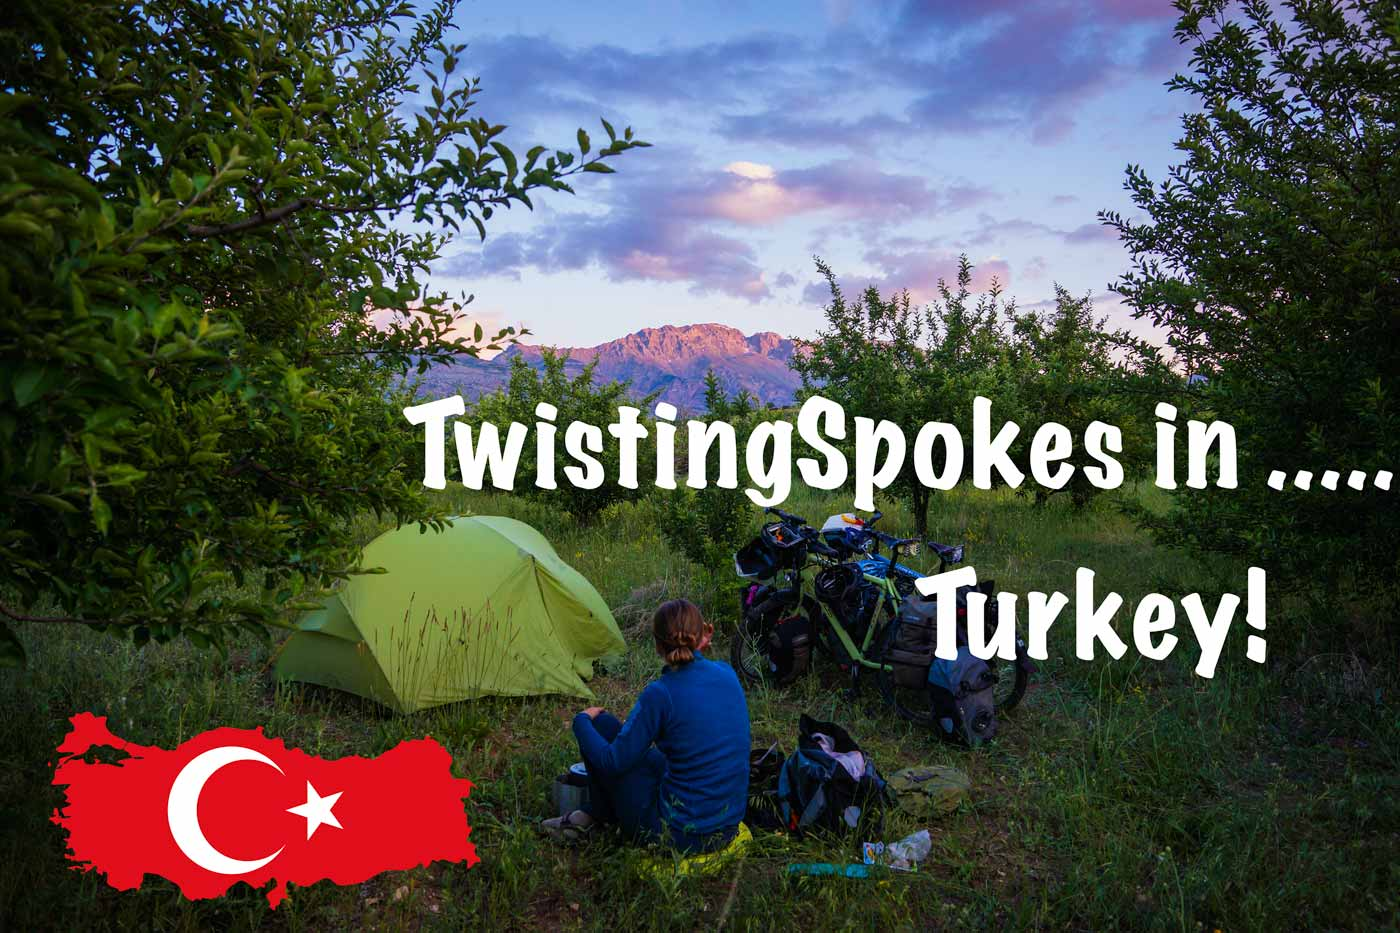 TwistingSpokes in Turkey